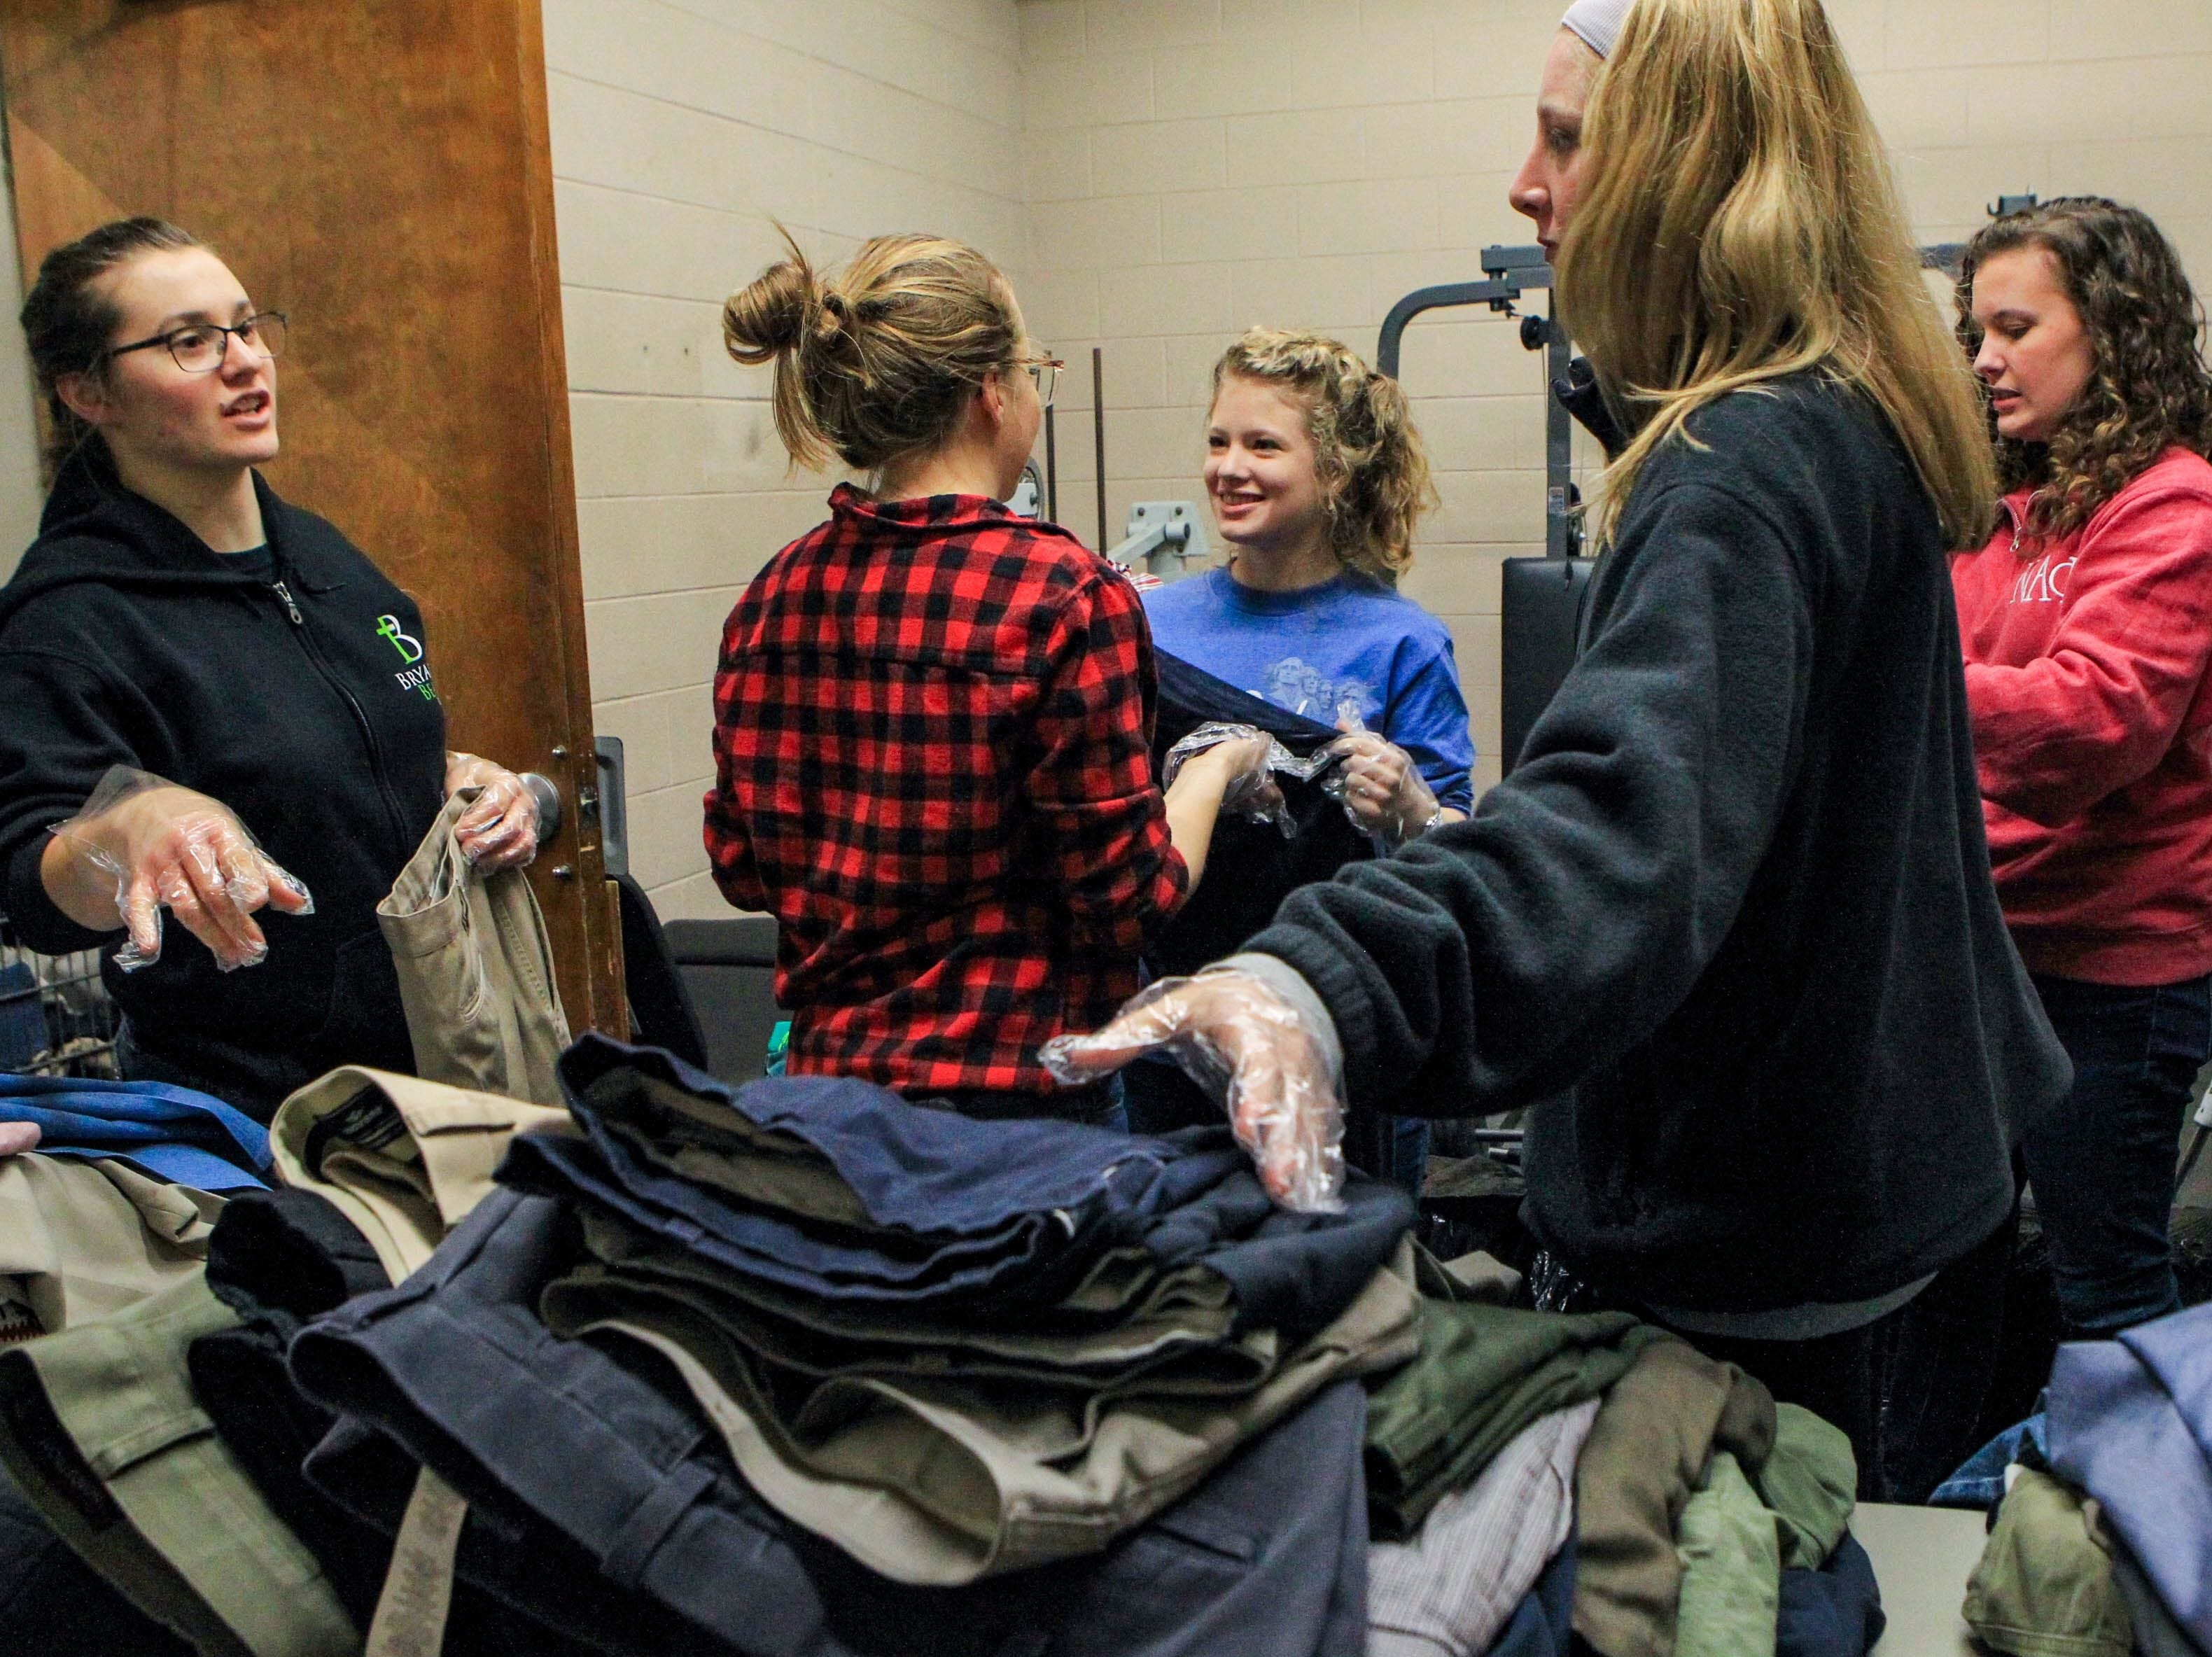 Suzanna Millington, a junior, Taylor Holland, a sophomore, Karen Mee, a sophomore, Sarah Epperson, a senior, and Jennifer Naas, a sophomore, discuss the best way to sort through the pants at Miracle HillÕs Greenville Rescue Mission on Martin Luther King, Jr. Day Monday, Jan. 21, 2019.